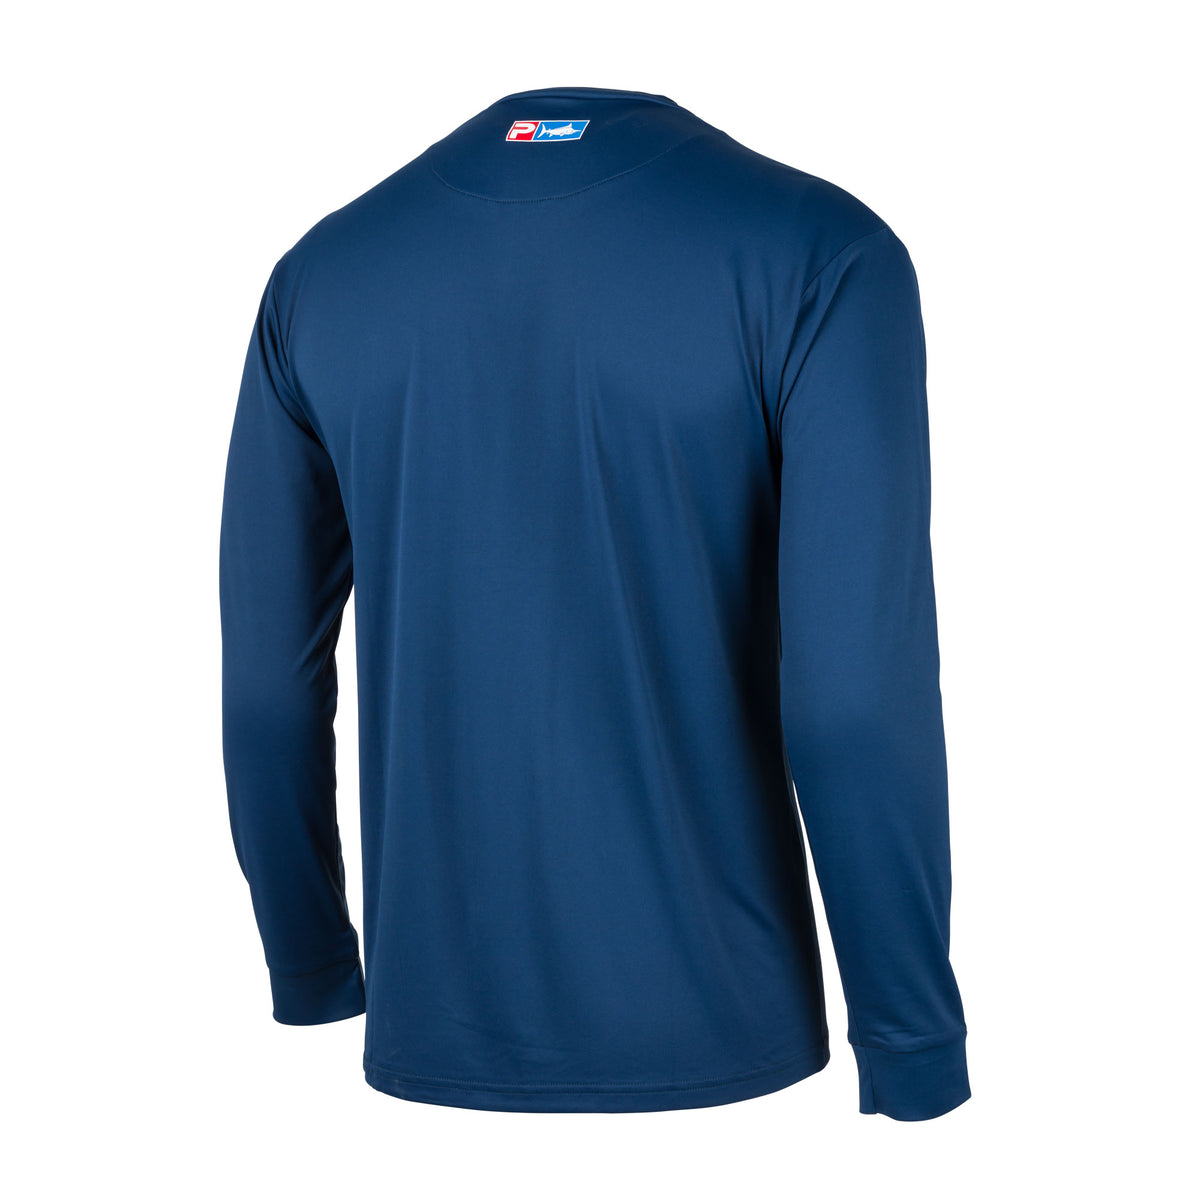 Aquatek Long Sleeve Fishing Shirt - Youth Big Image - 2